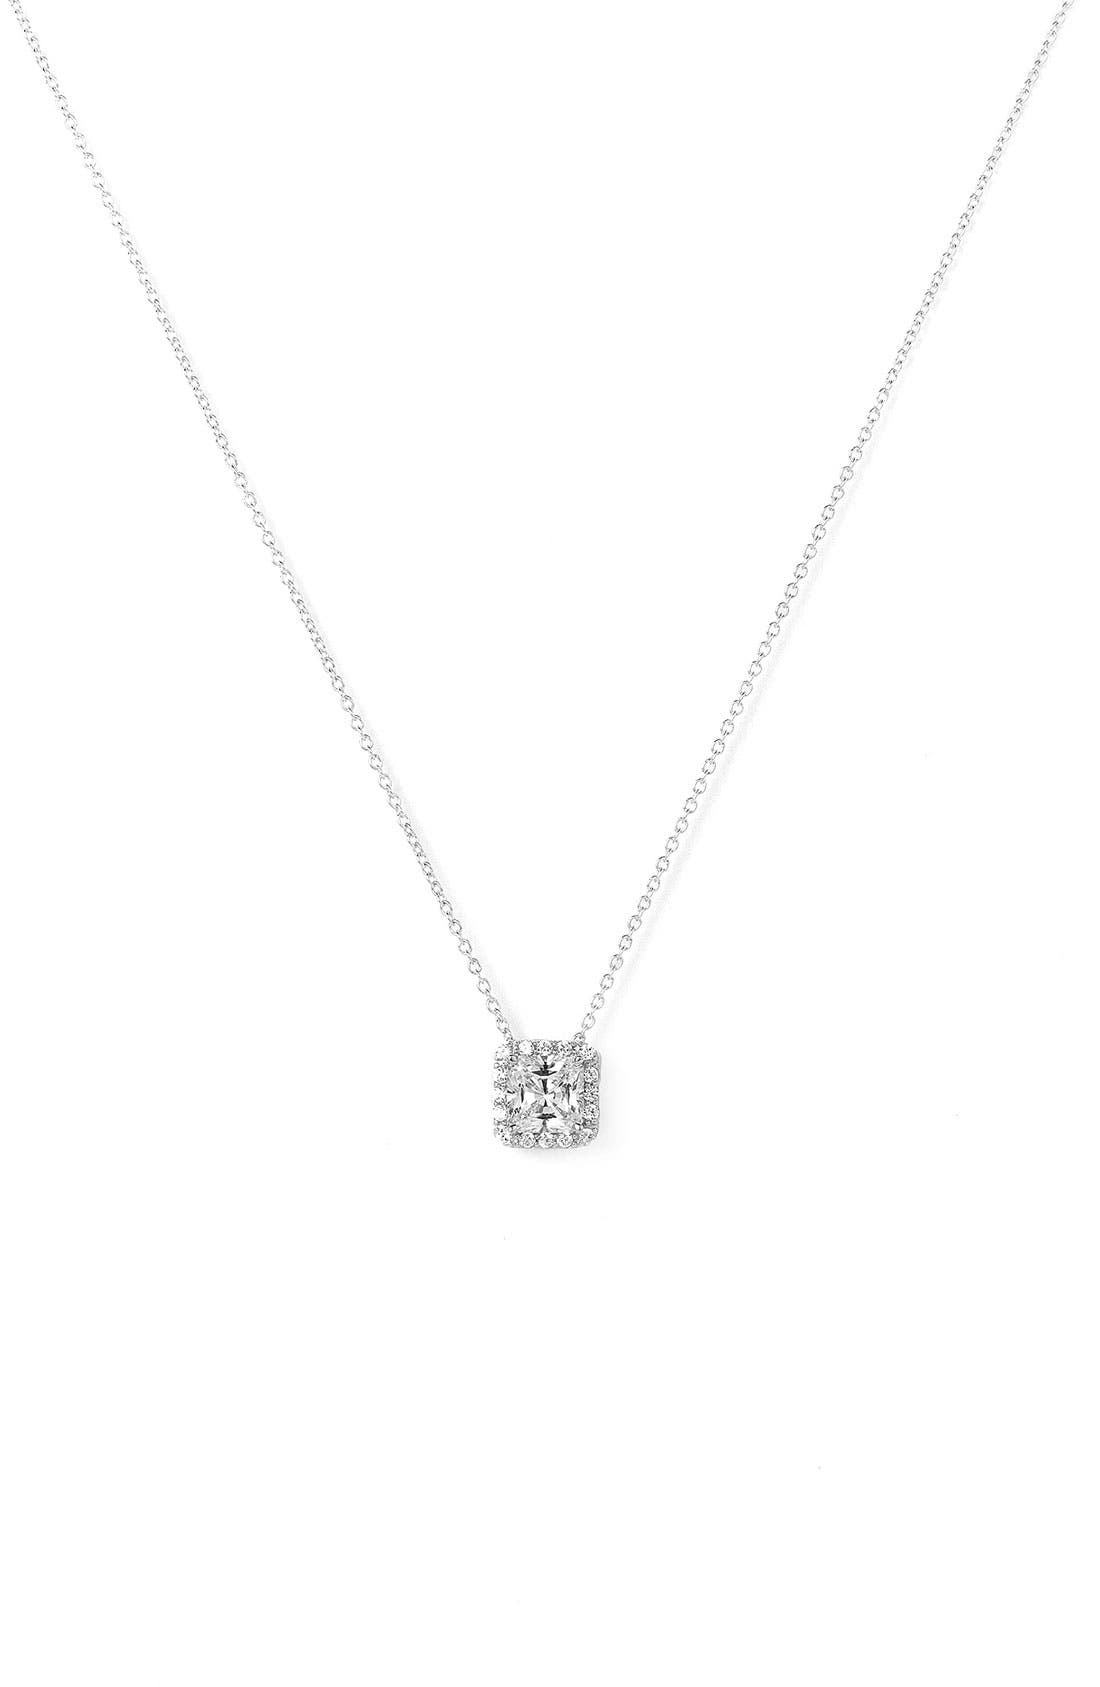 Main Image - Nordstrom Princess Cut Pavé Pendant Necklace